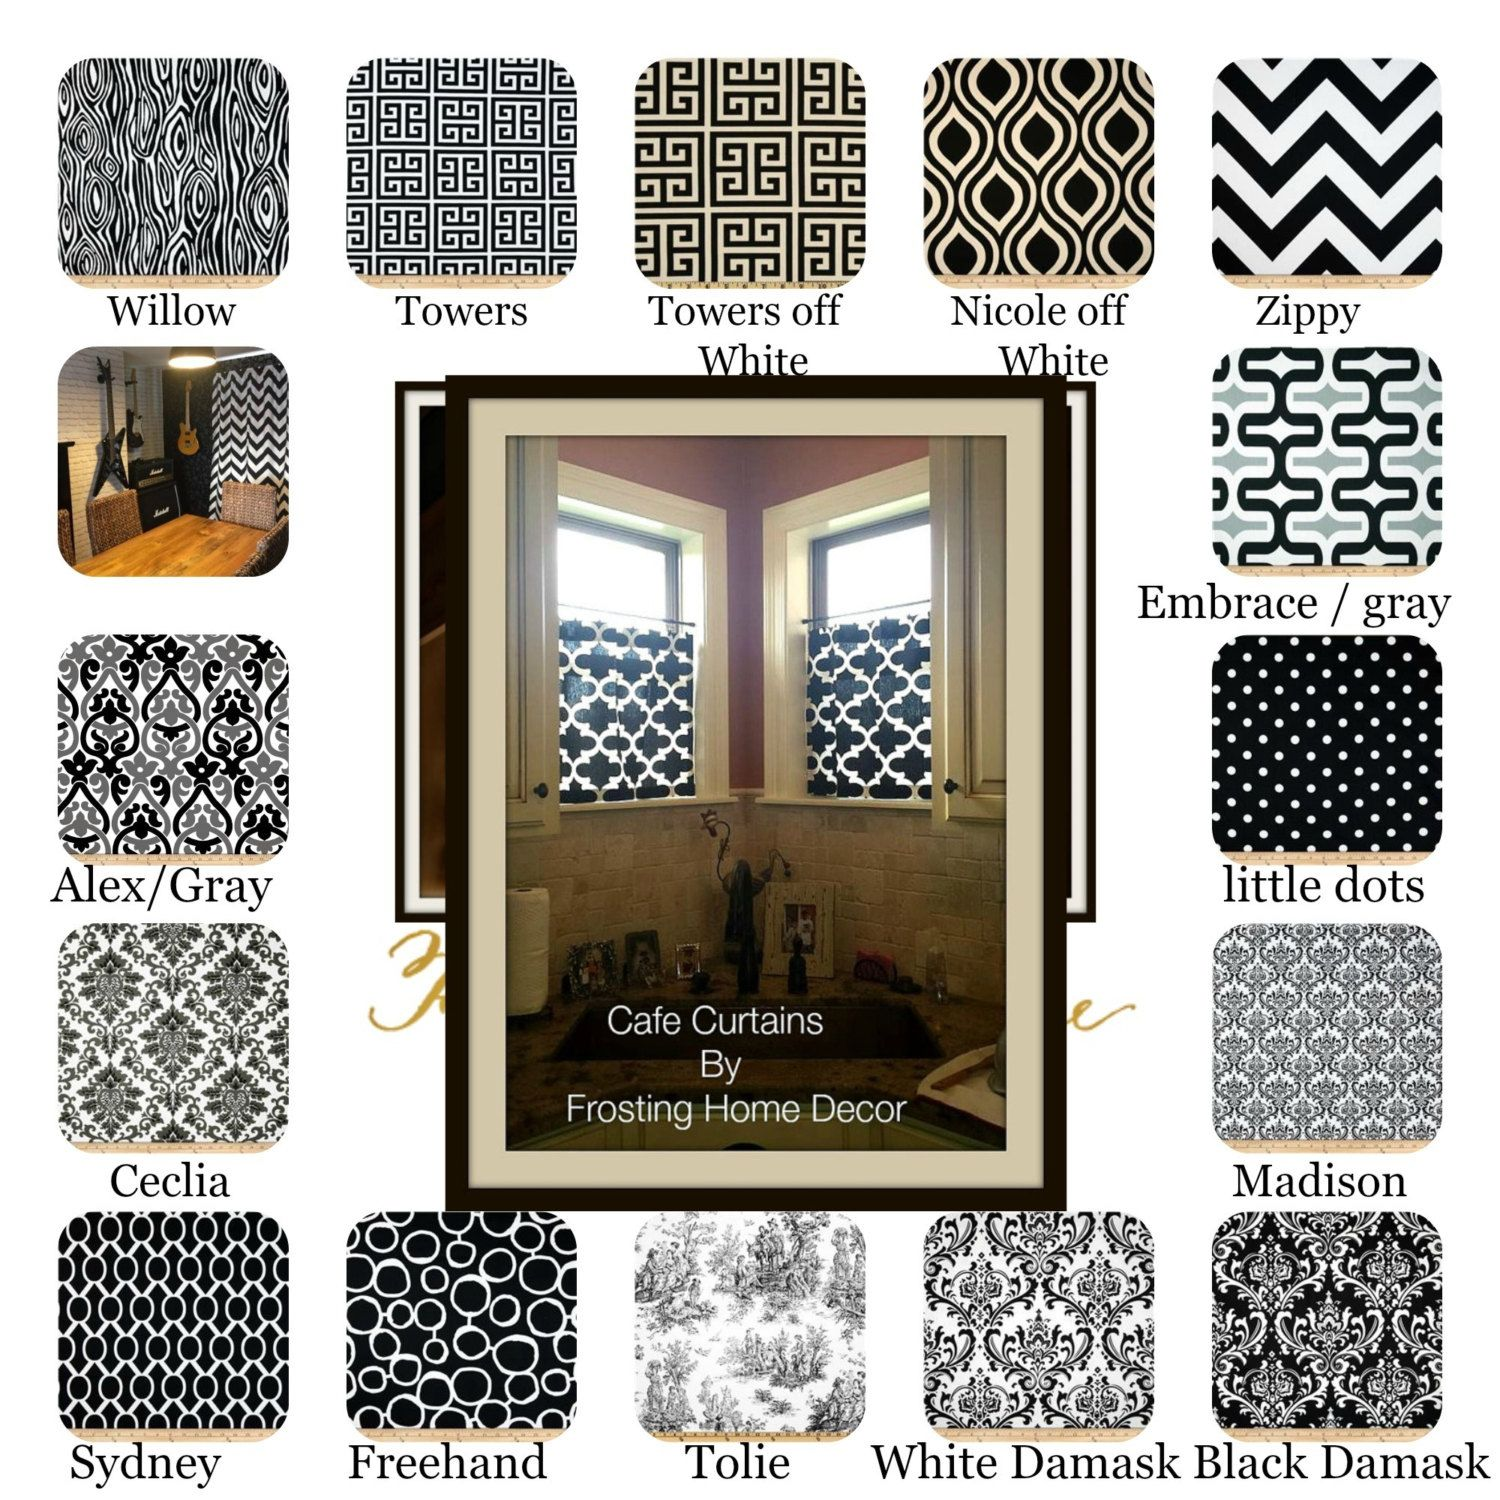 Small window decor  black designer fabric cafe curtain kitchen curtains living rooms